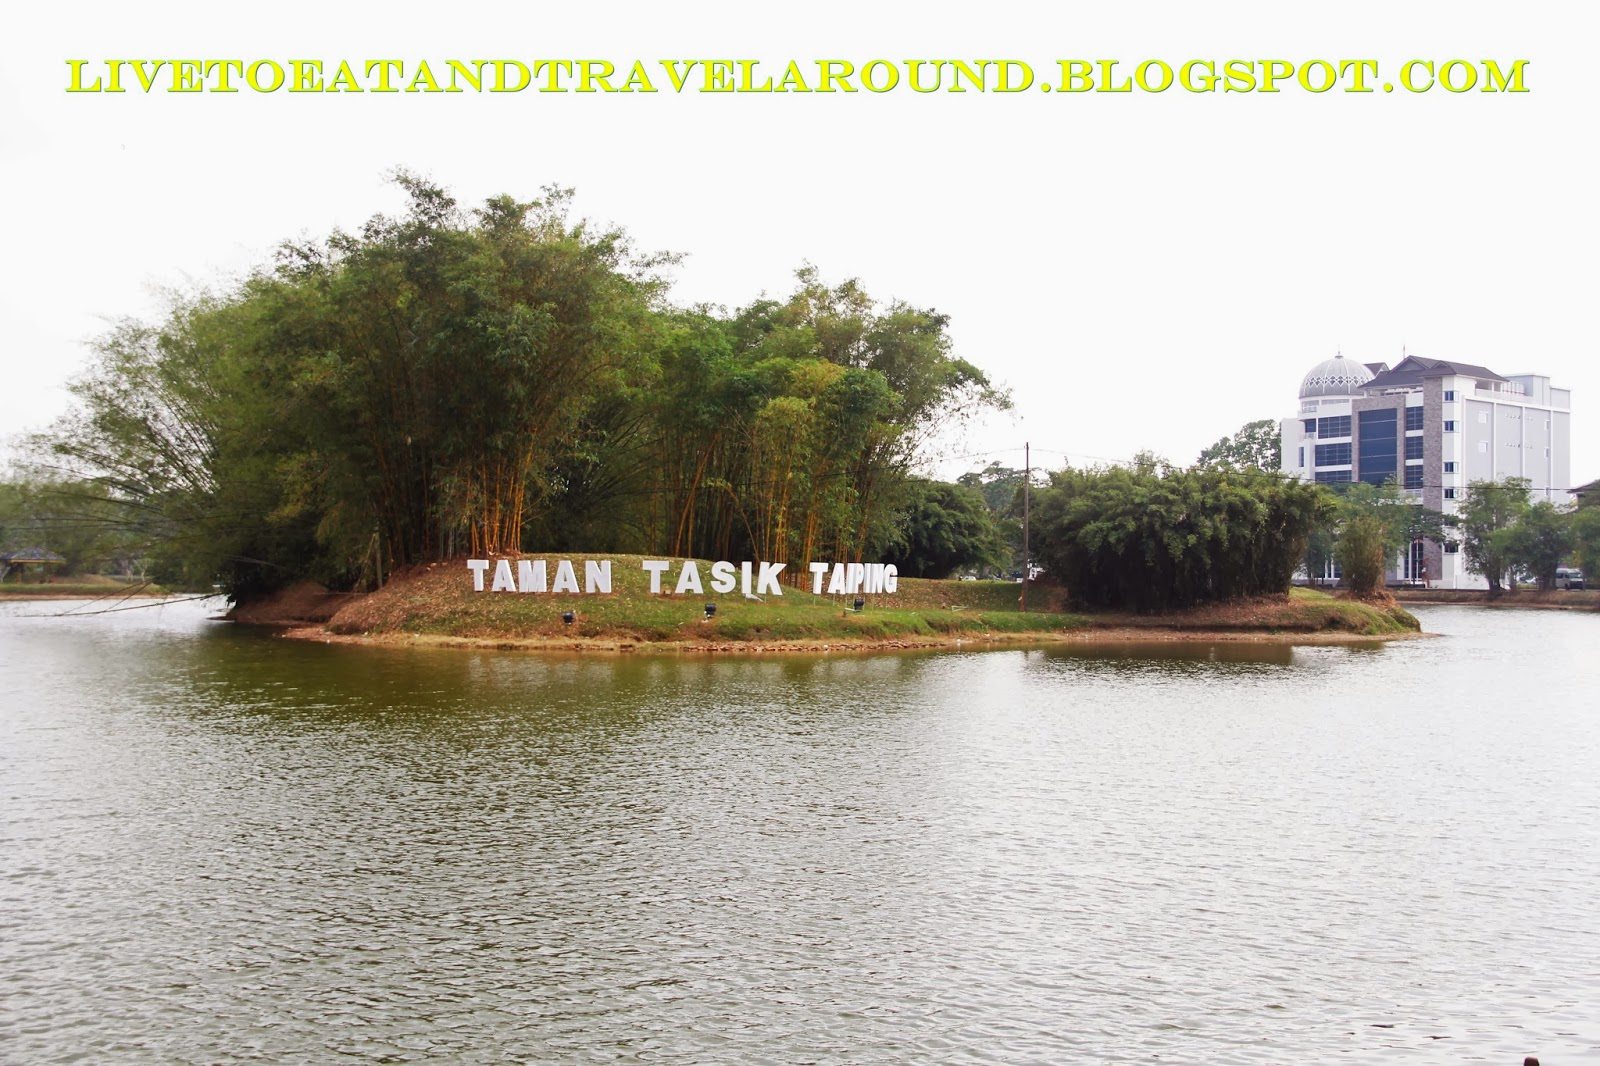 A collection of memories: Taiping Lake Garden